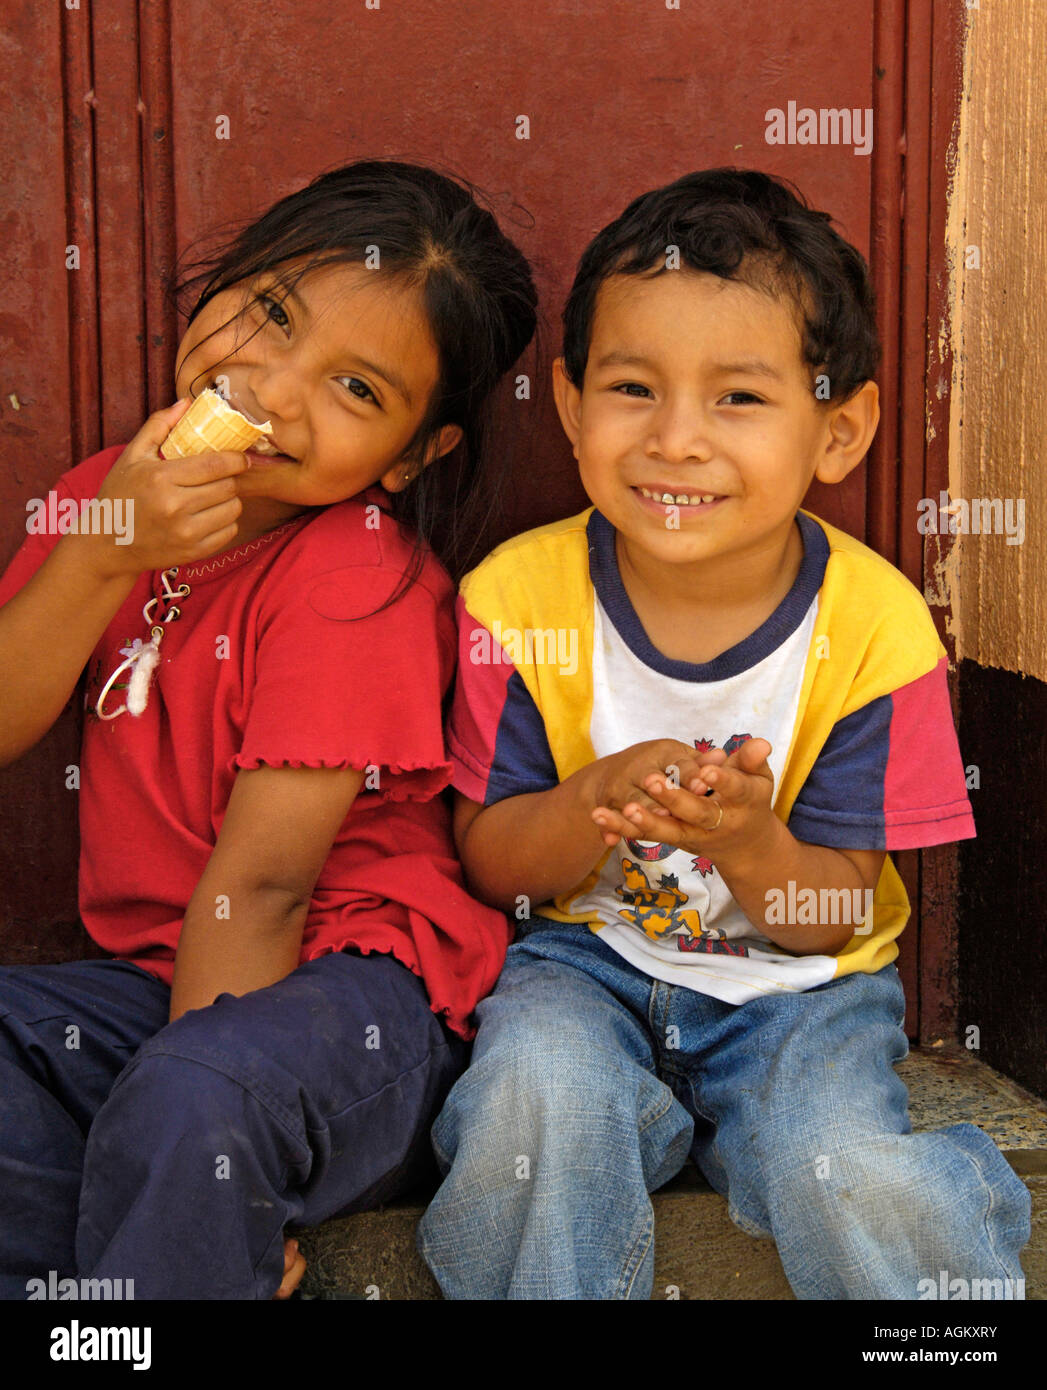 Guatemala,  Santiago Atitlan, Portrait of boy and girl sitting in doorway, one eating ice cream. - Stock Image